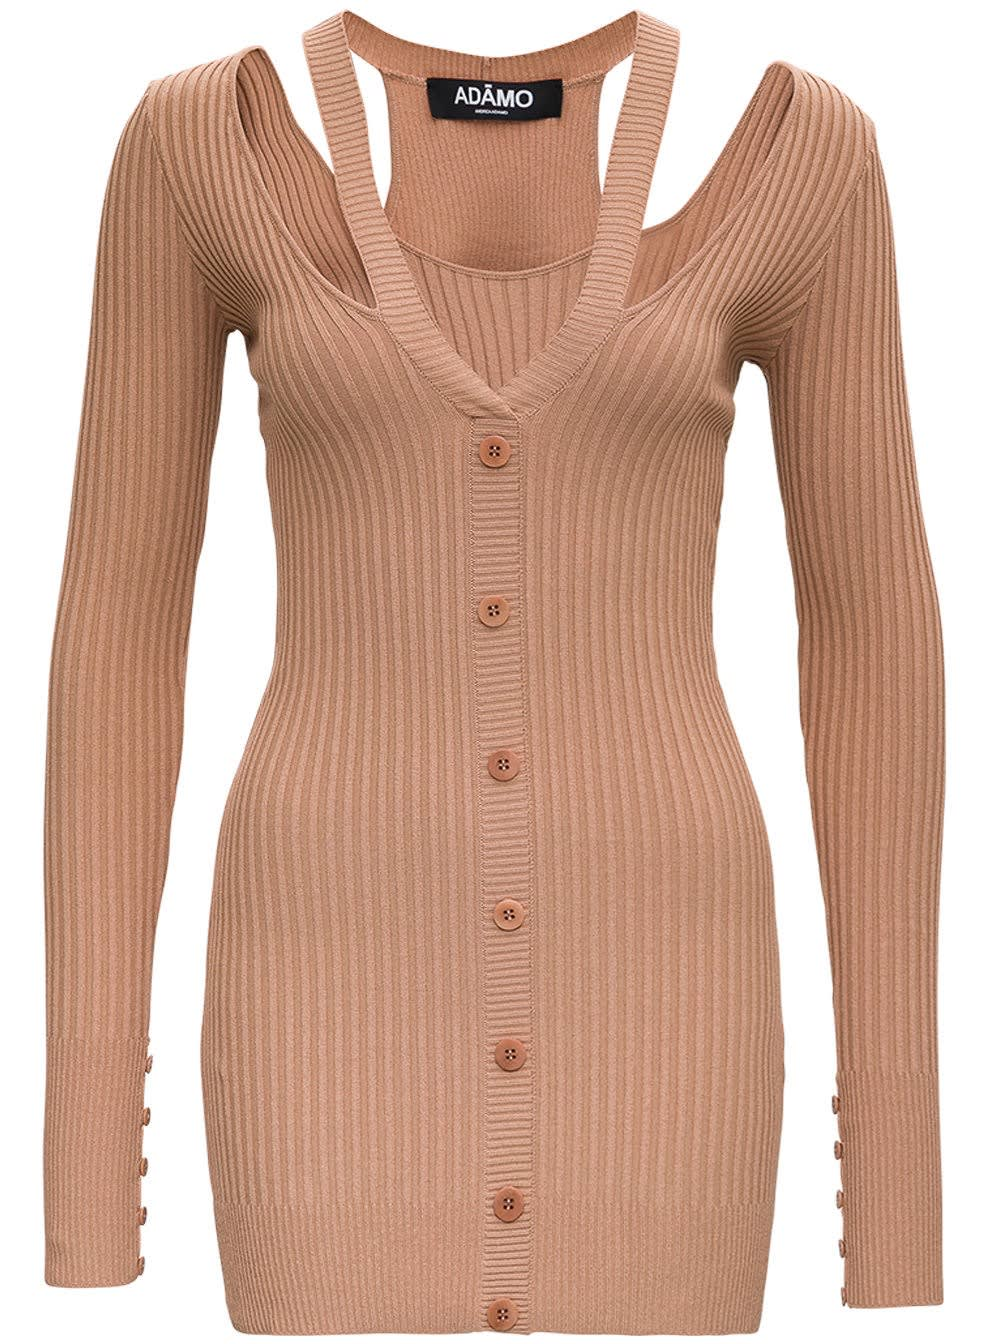 Buy Andrea Adamo Beige Ribbed Knit Dress online, shop Andrea Adamo with free shipping